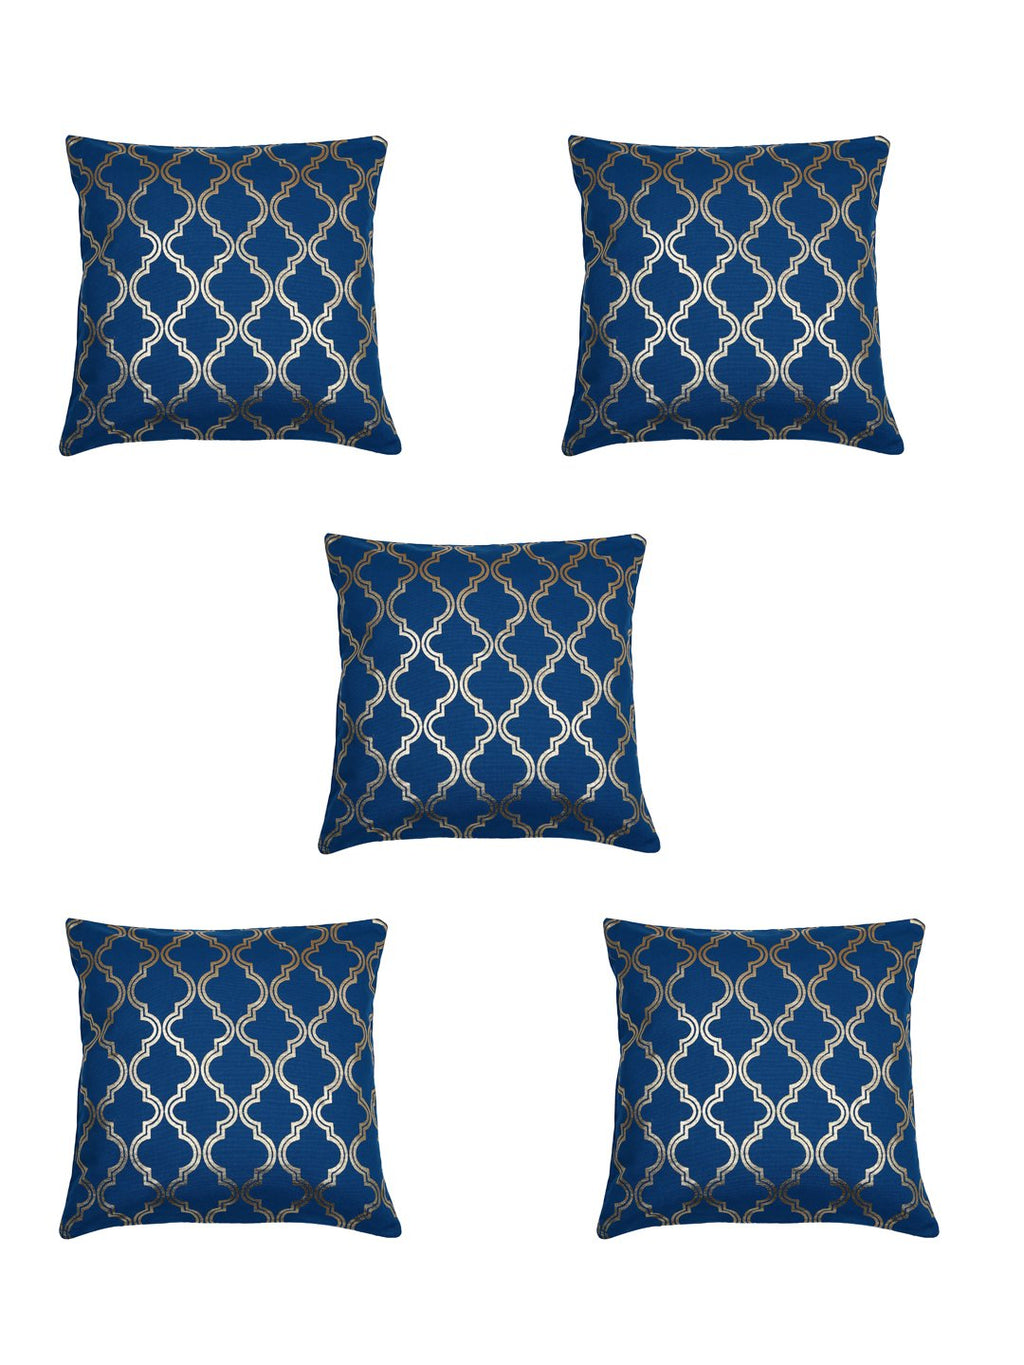 Handcrafted Set Of 5 Blue Gold Foil Lattice Cushion Cover